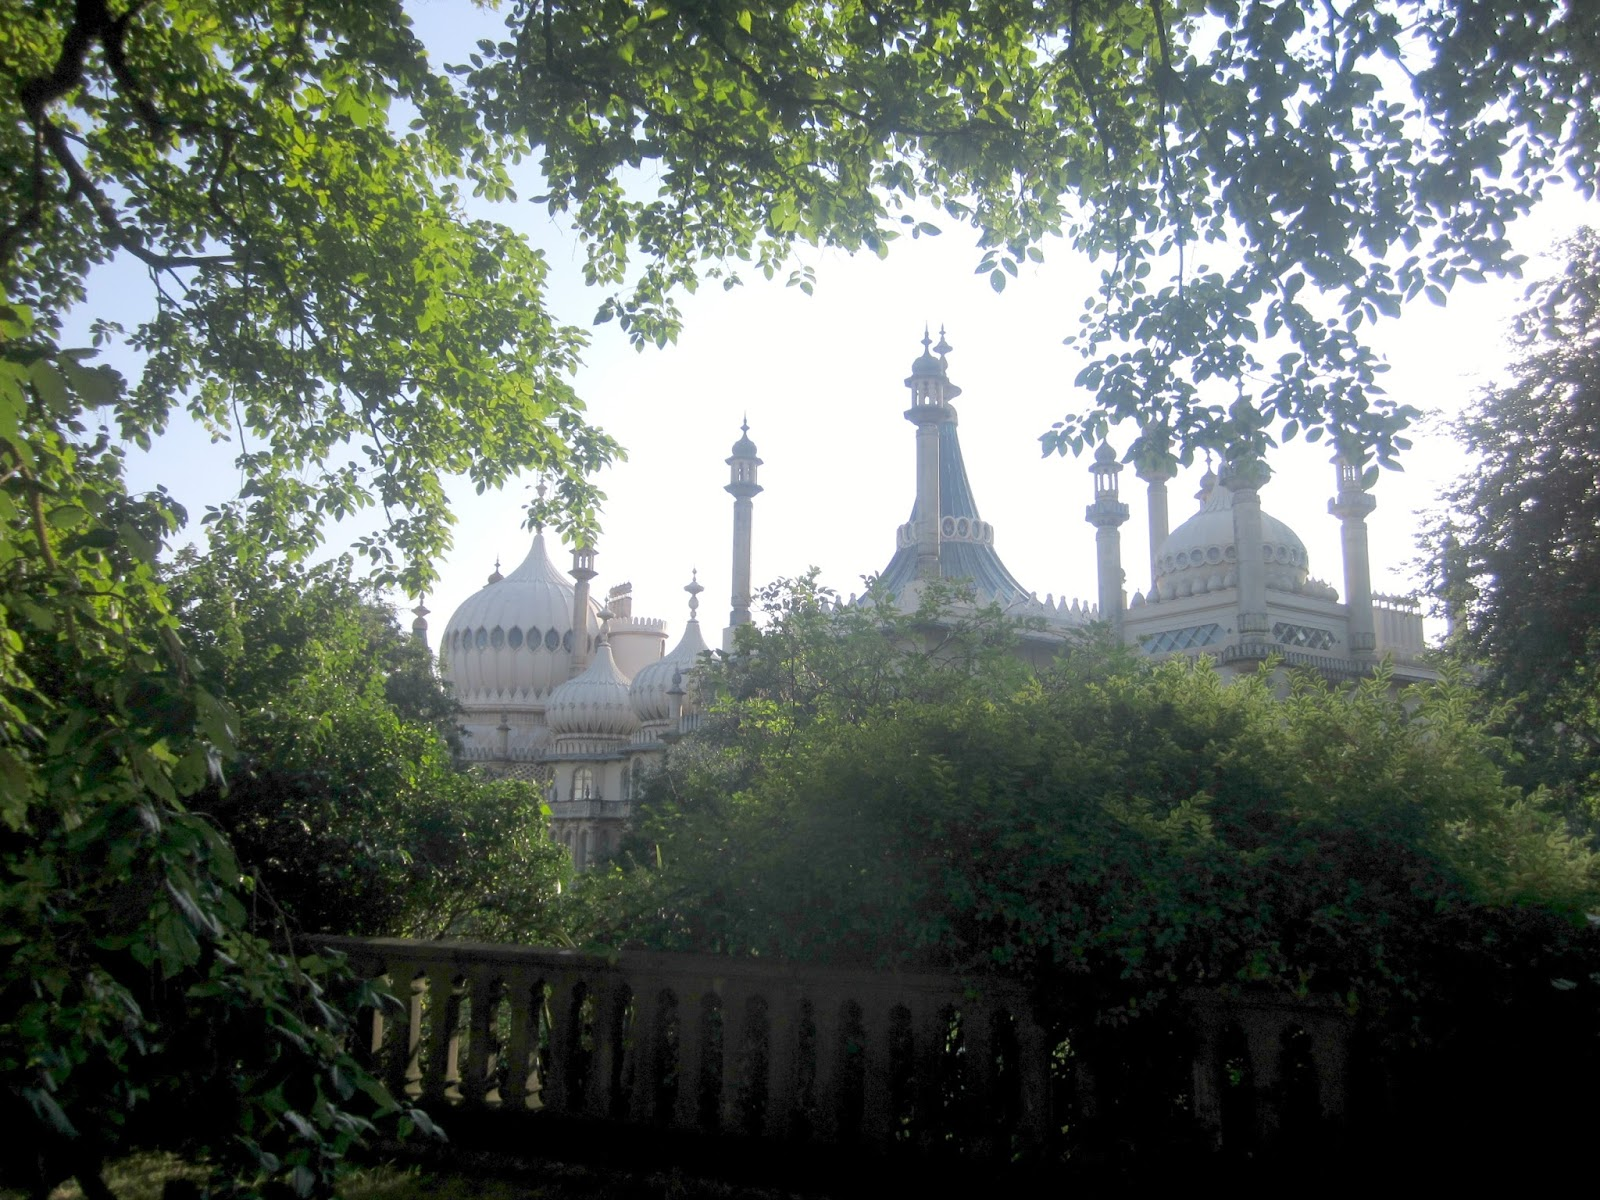 brighton pavillion through the trees